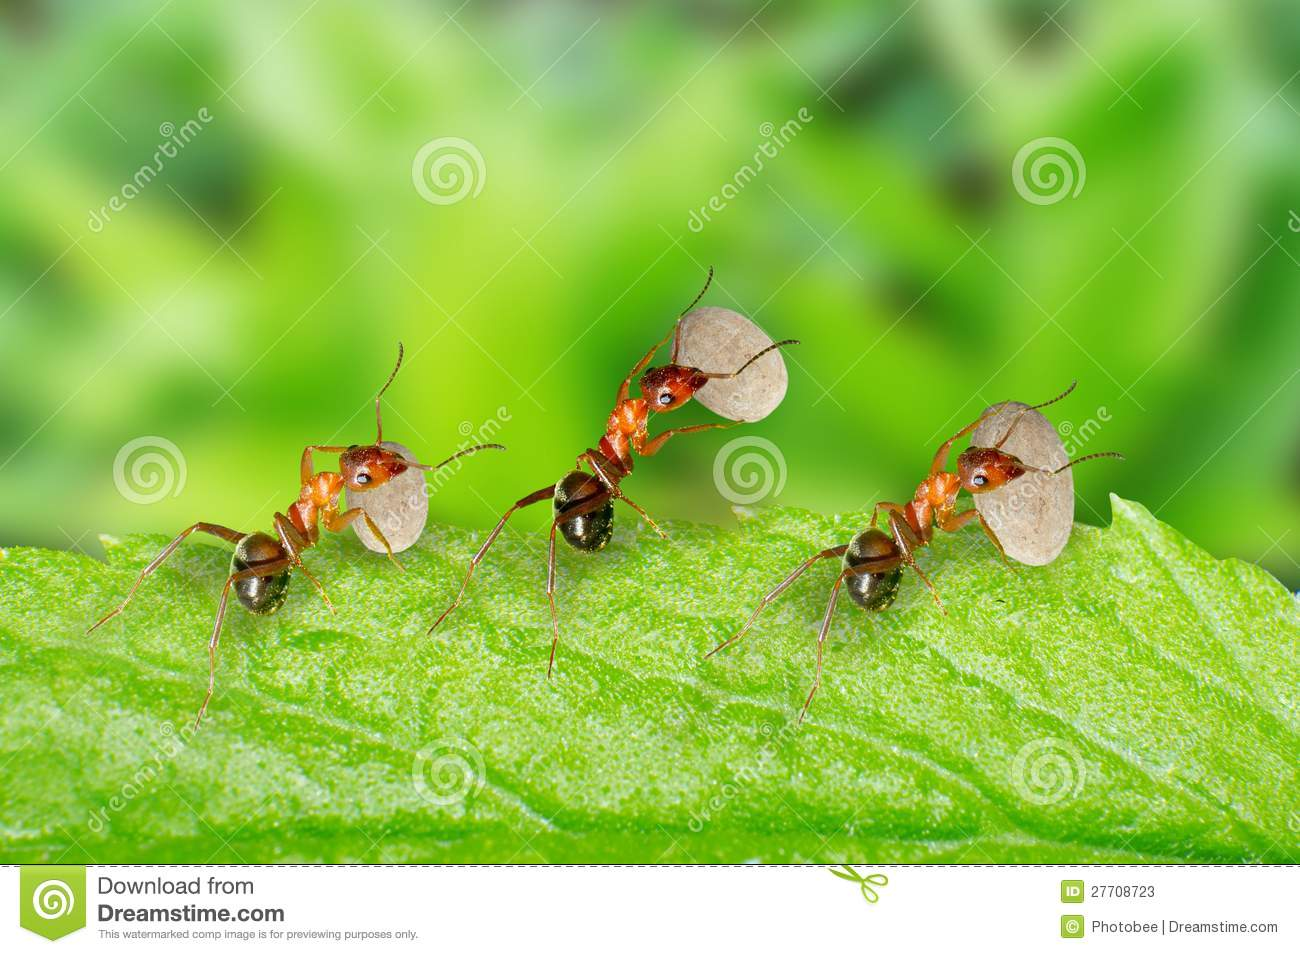 Ants Carrying Food Stock Photos - Image: 27708723